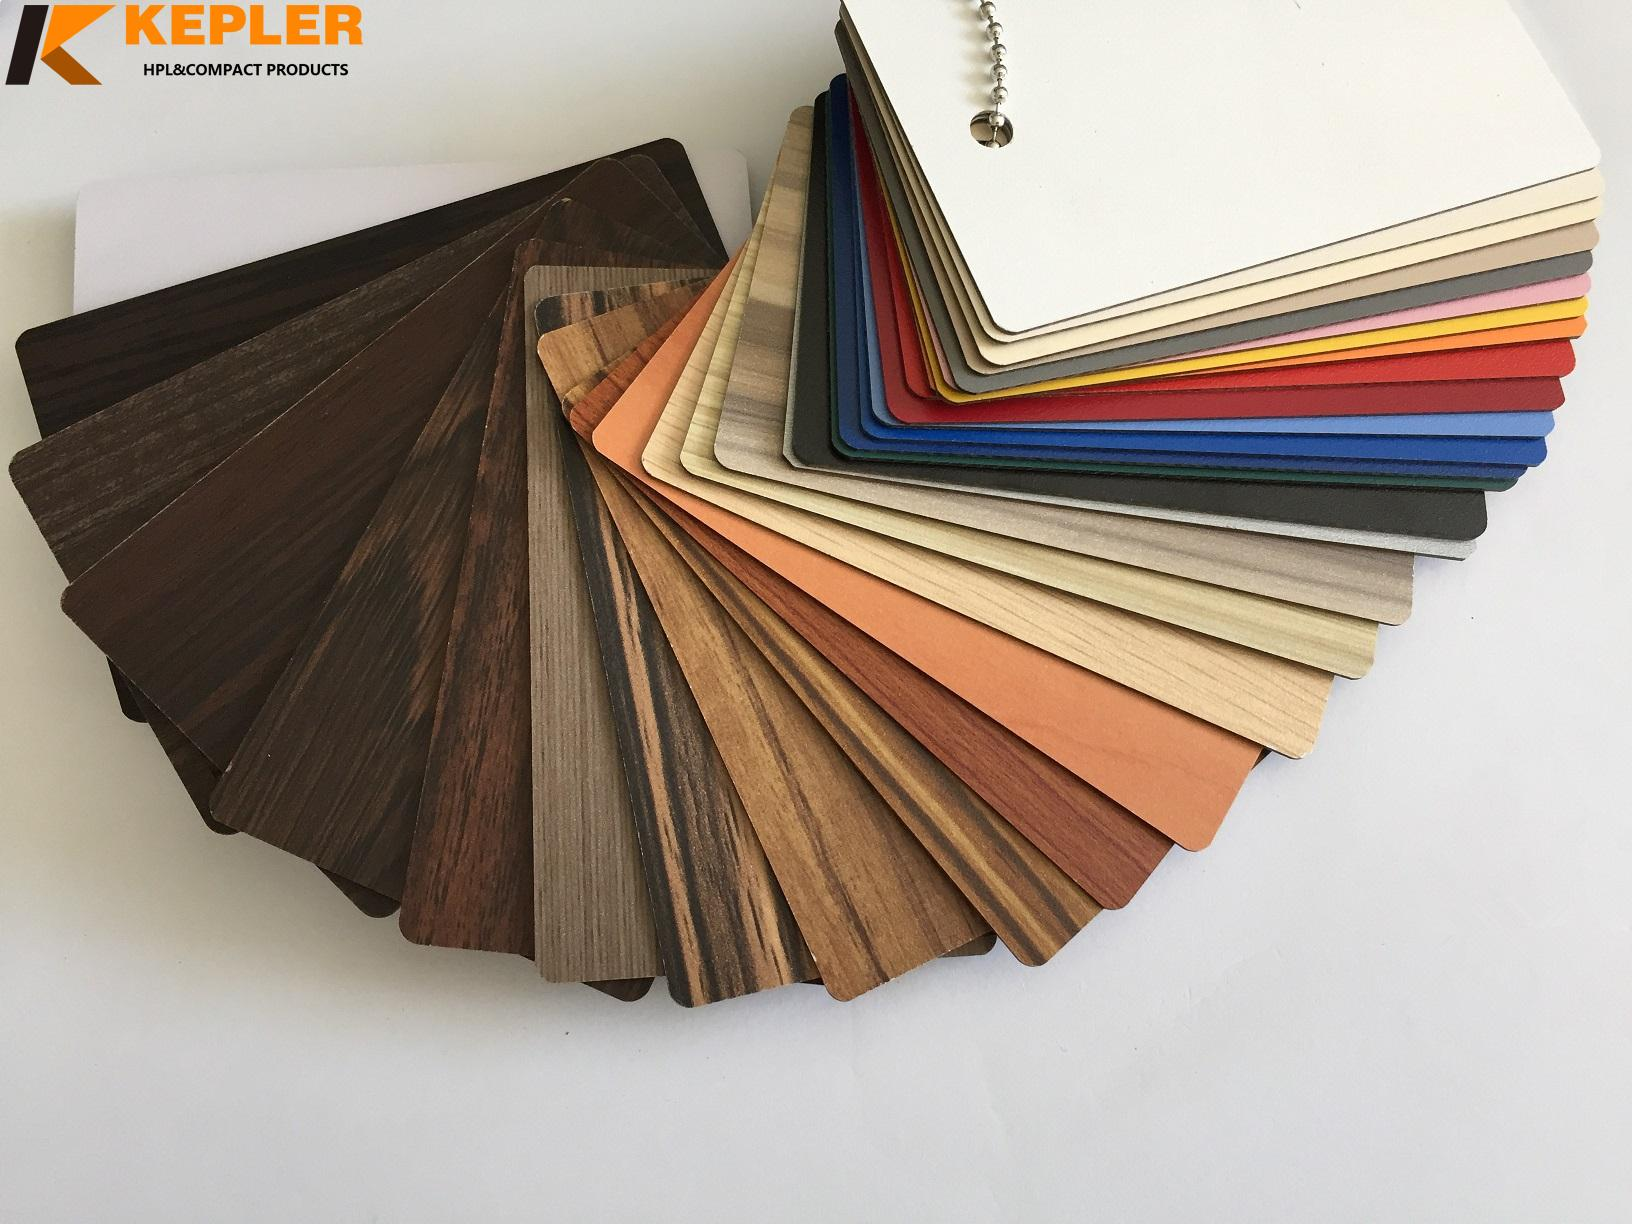 Surface covering decoration  6mm 8mm compact laminate hpl wall cladding panel